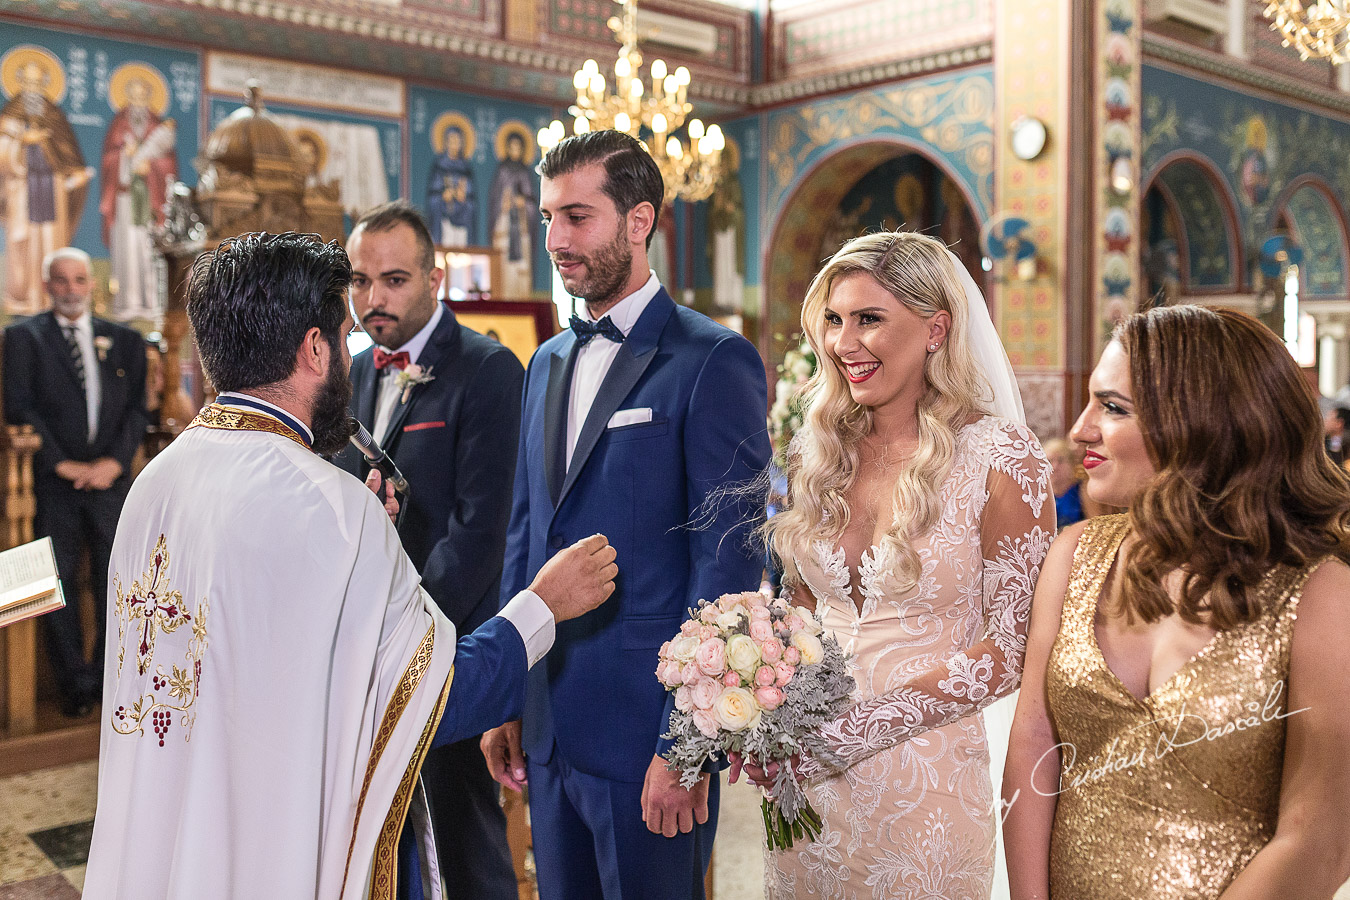 Church ceremony moments captured at an elegant and romantic wedding at Elias Beach Hotel by Cristian Dascalu.